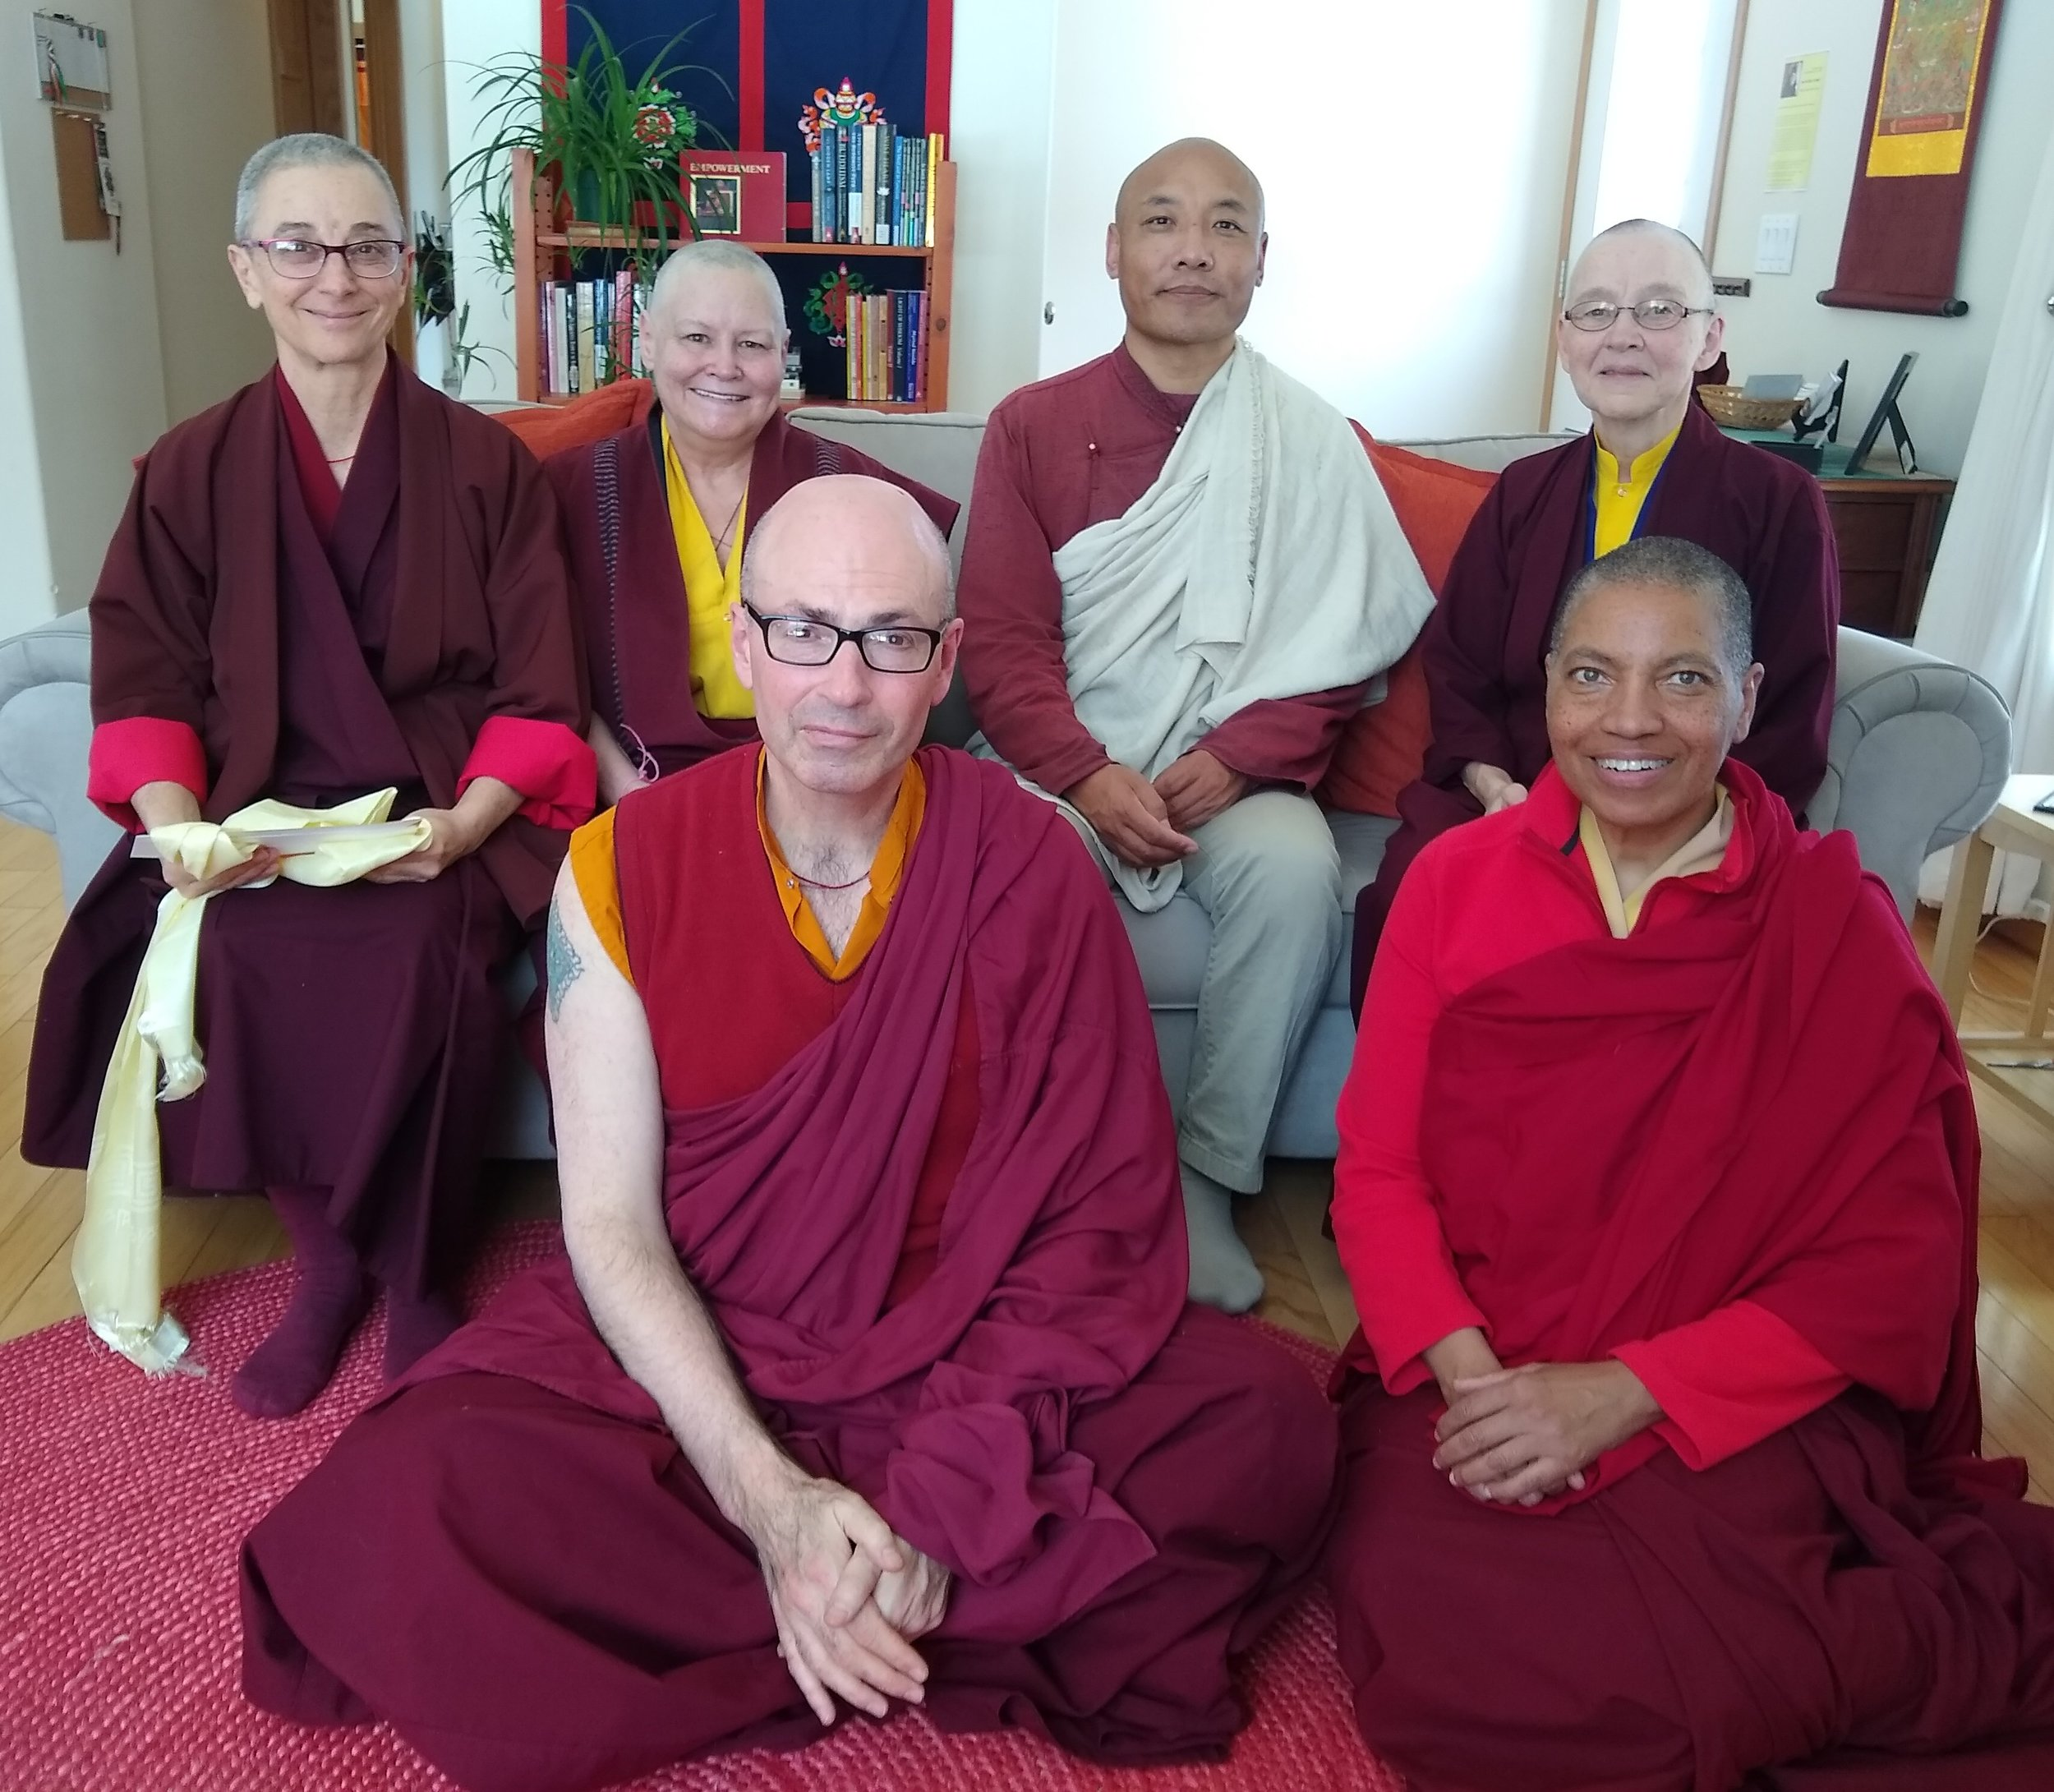 The obligatory group photo before the local monastics bid farewell to Anam Thubten with the heartfelt wish that he return again and again.